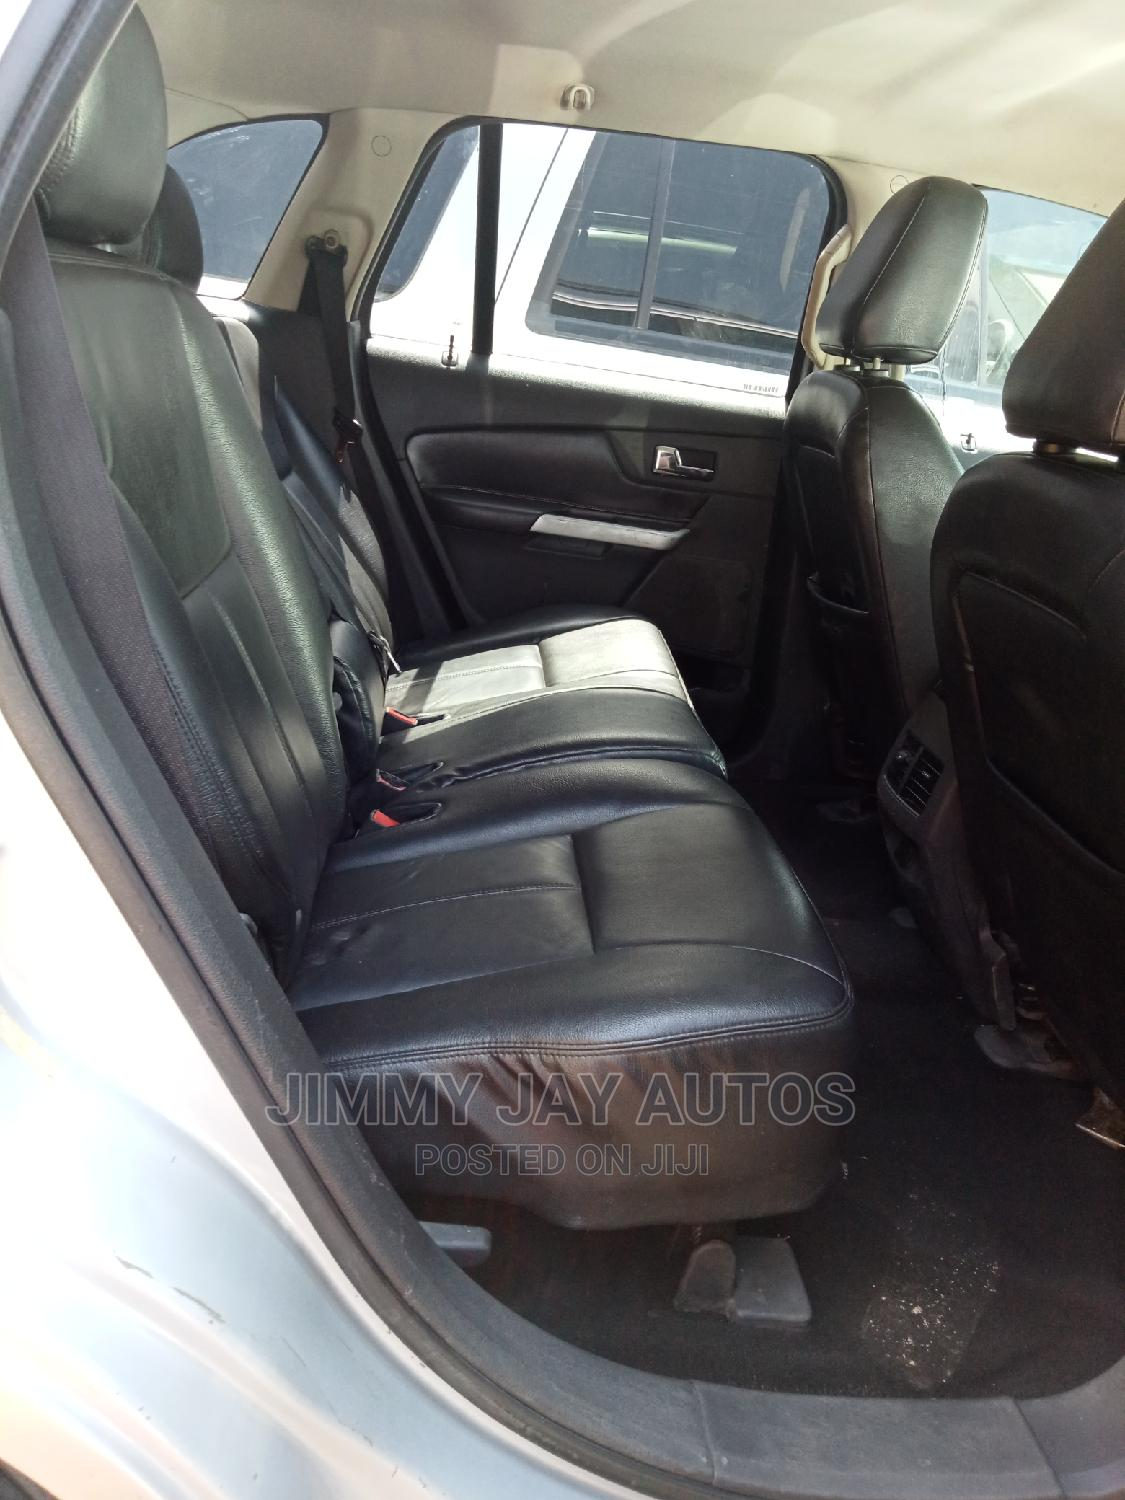 Archive: Ford Edge 2007 SE 4dr FWD (3.5L 6cyl 6A) Silver